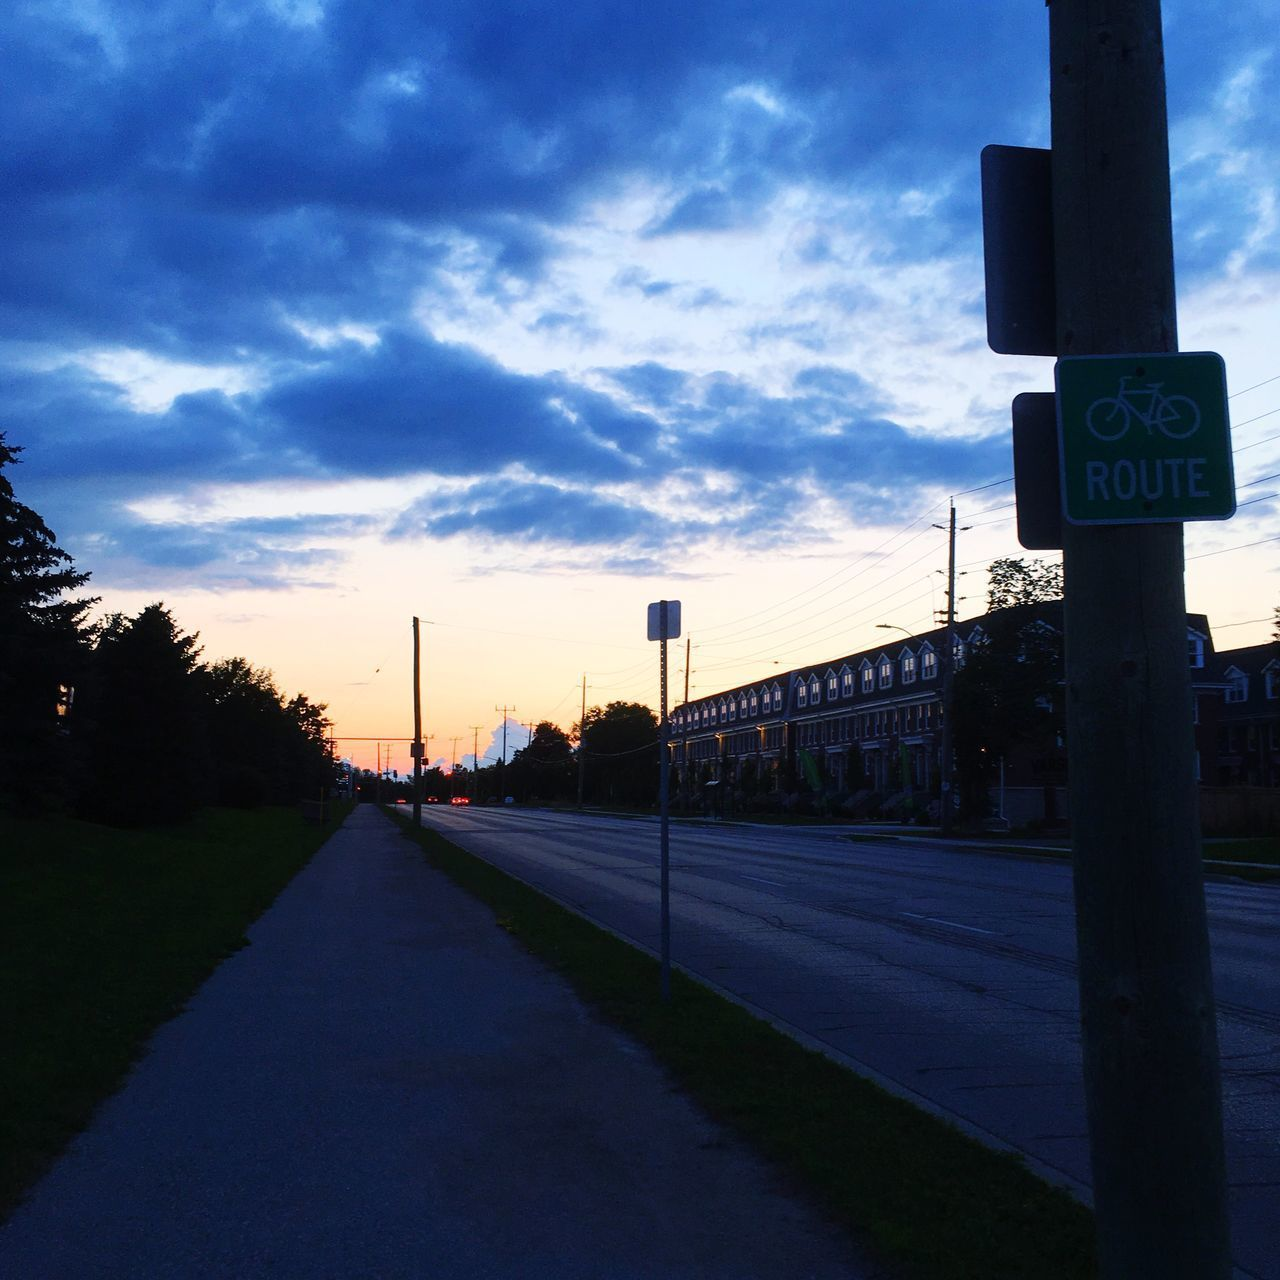 sky, road, transportation, cloud - sky, communication, sunset, guidance, the way forward, road sign, no people, outdoors, tree, day